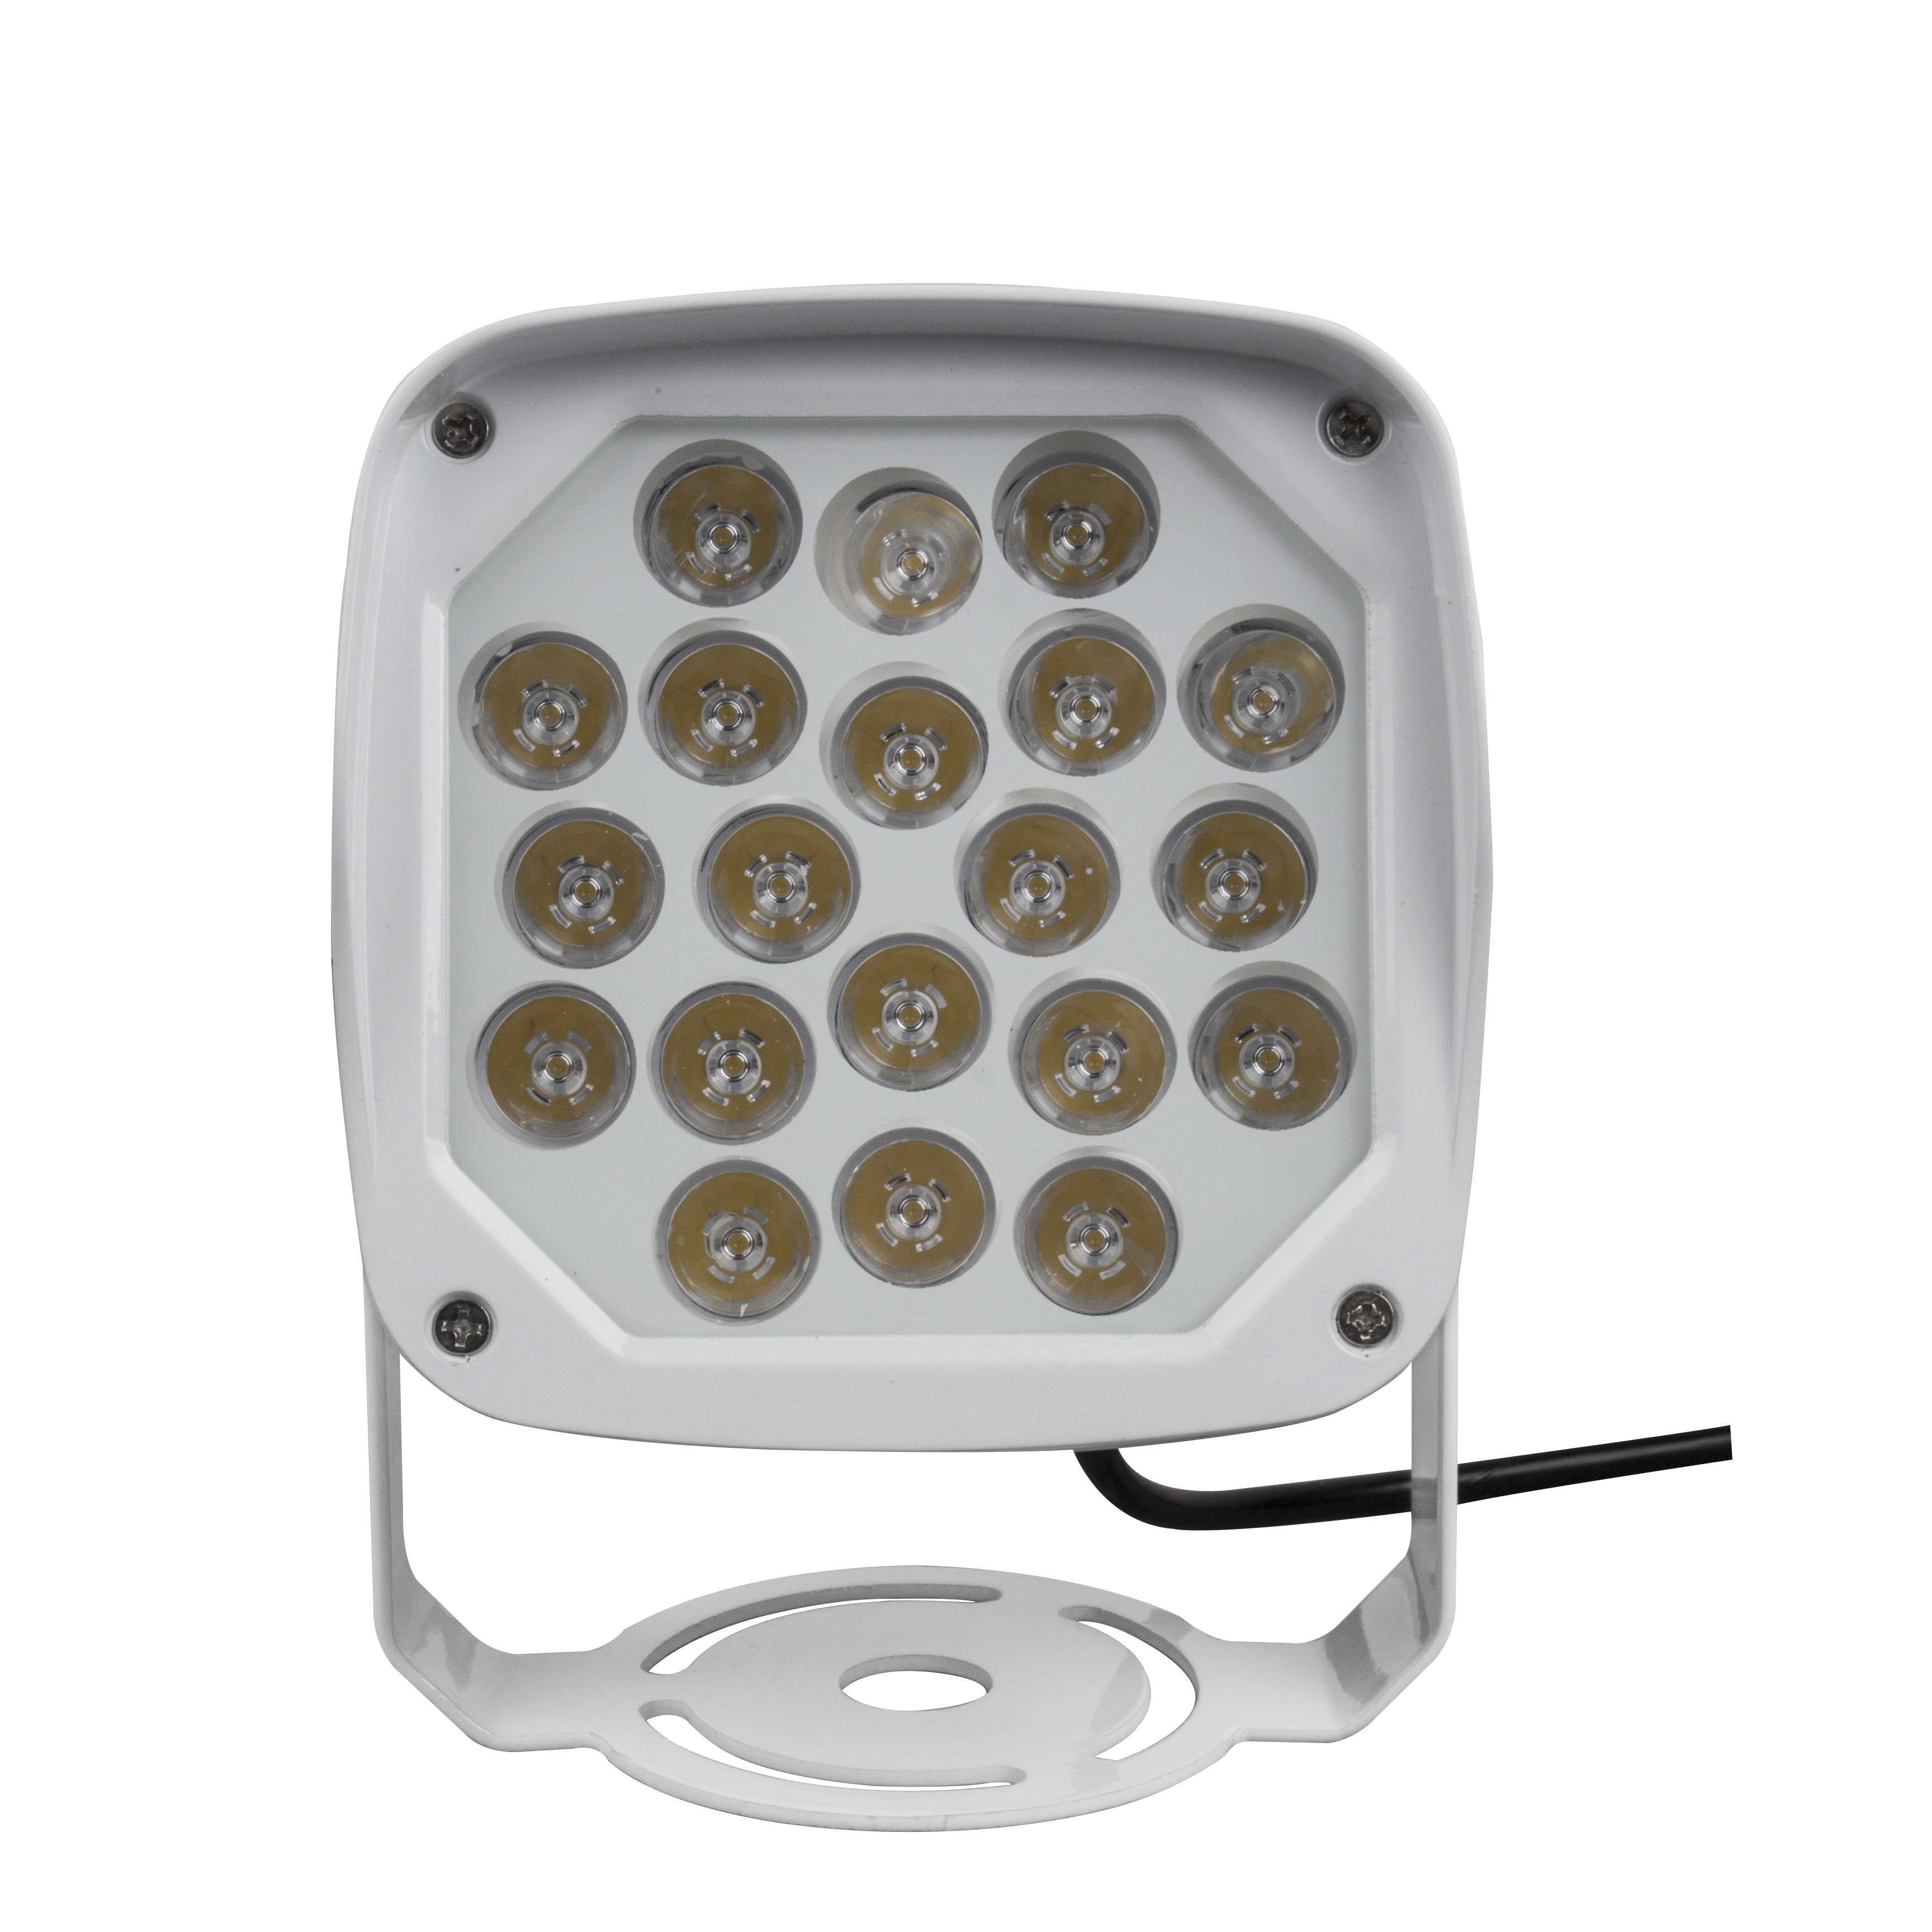 High-power 20w single color IP65 outdoor led spotlight with Multiple beam angles